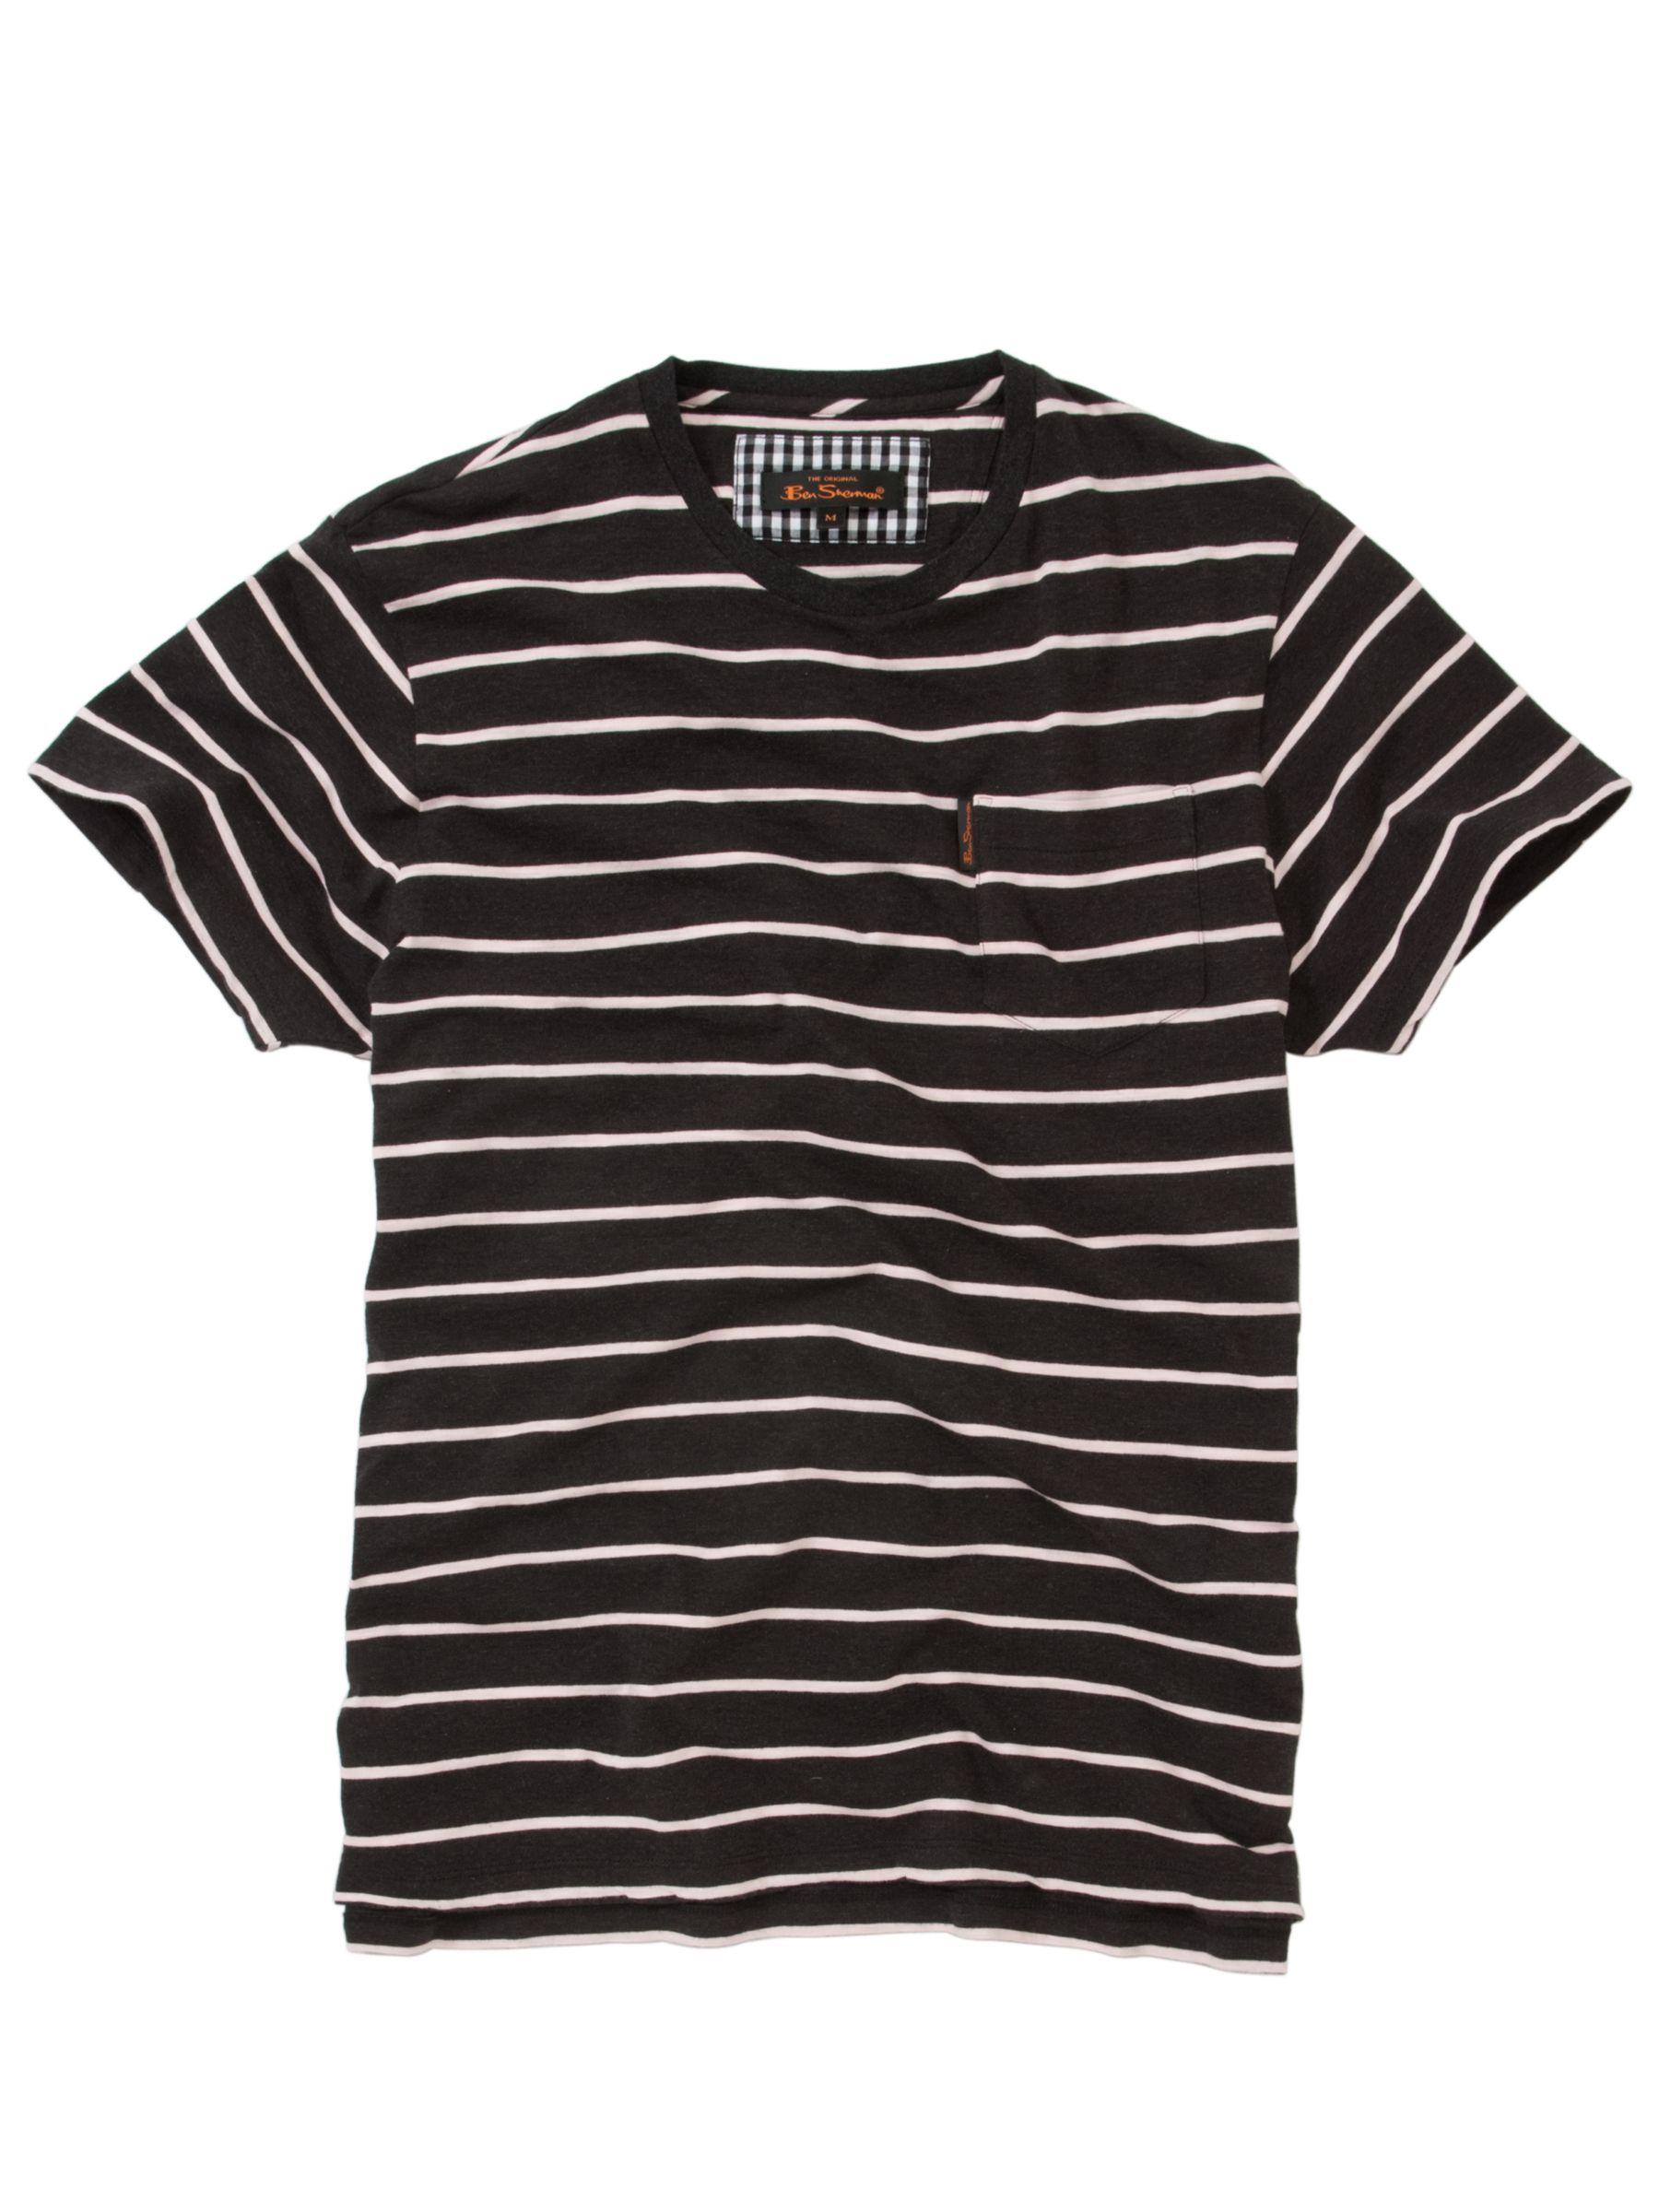 Stripe Short Sleeve T-Shirt,